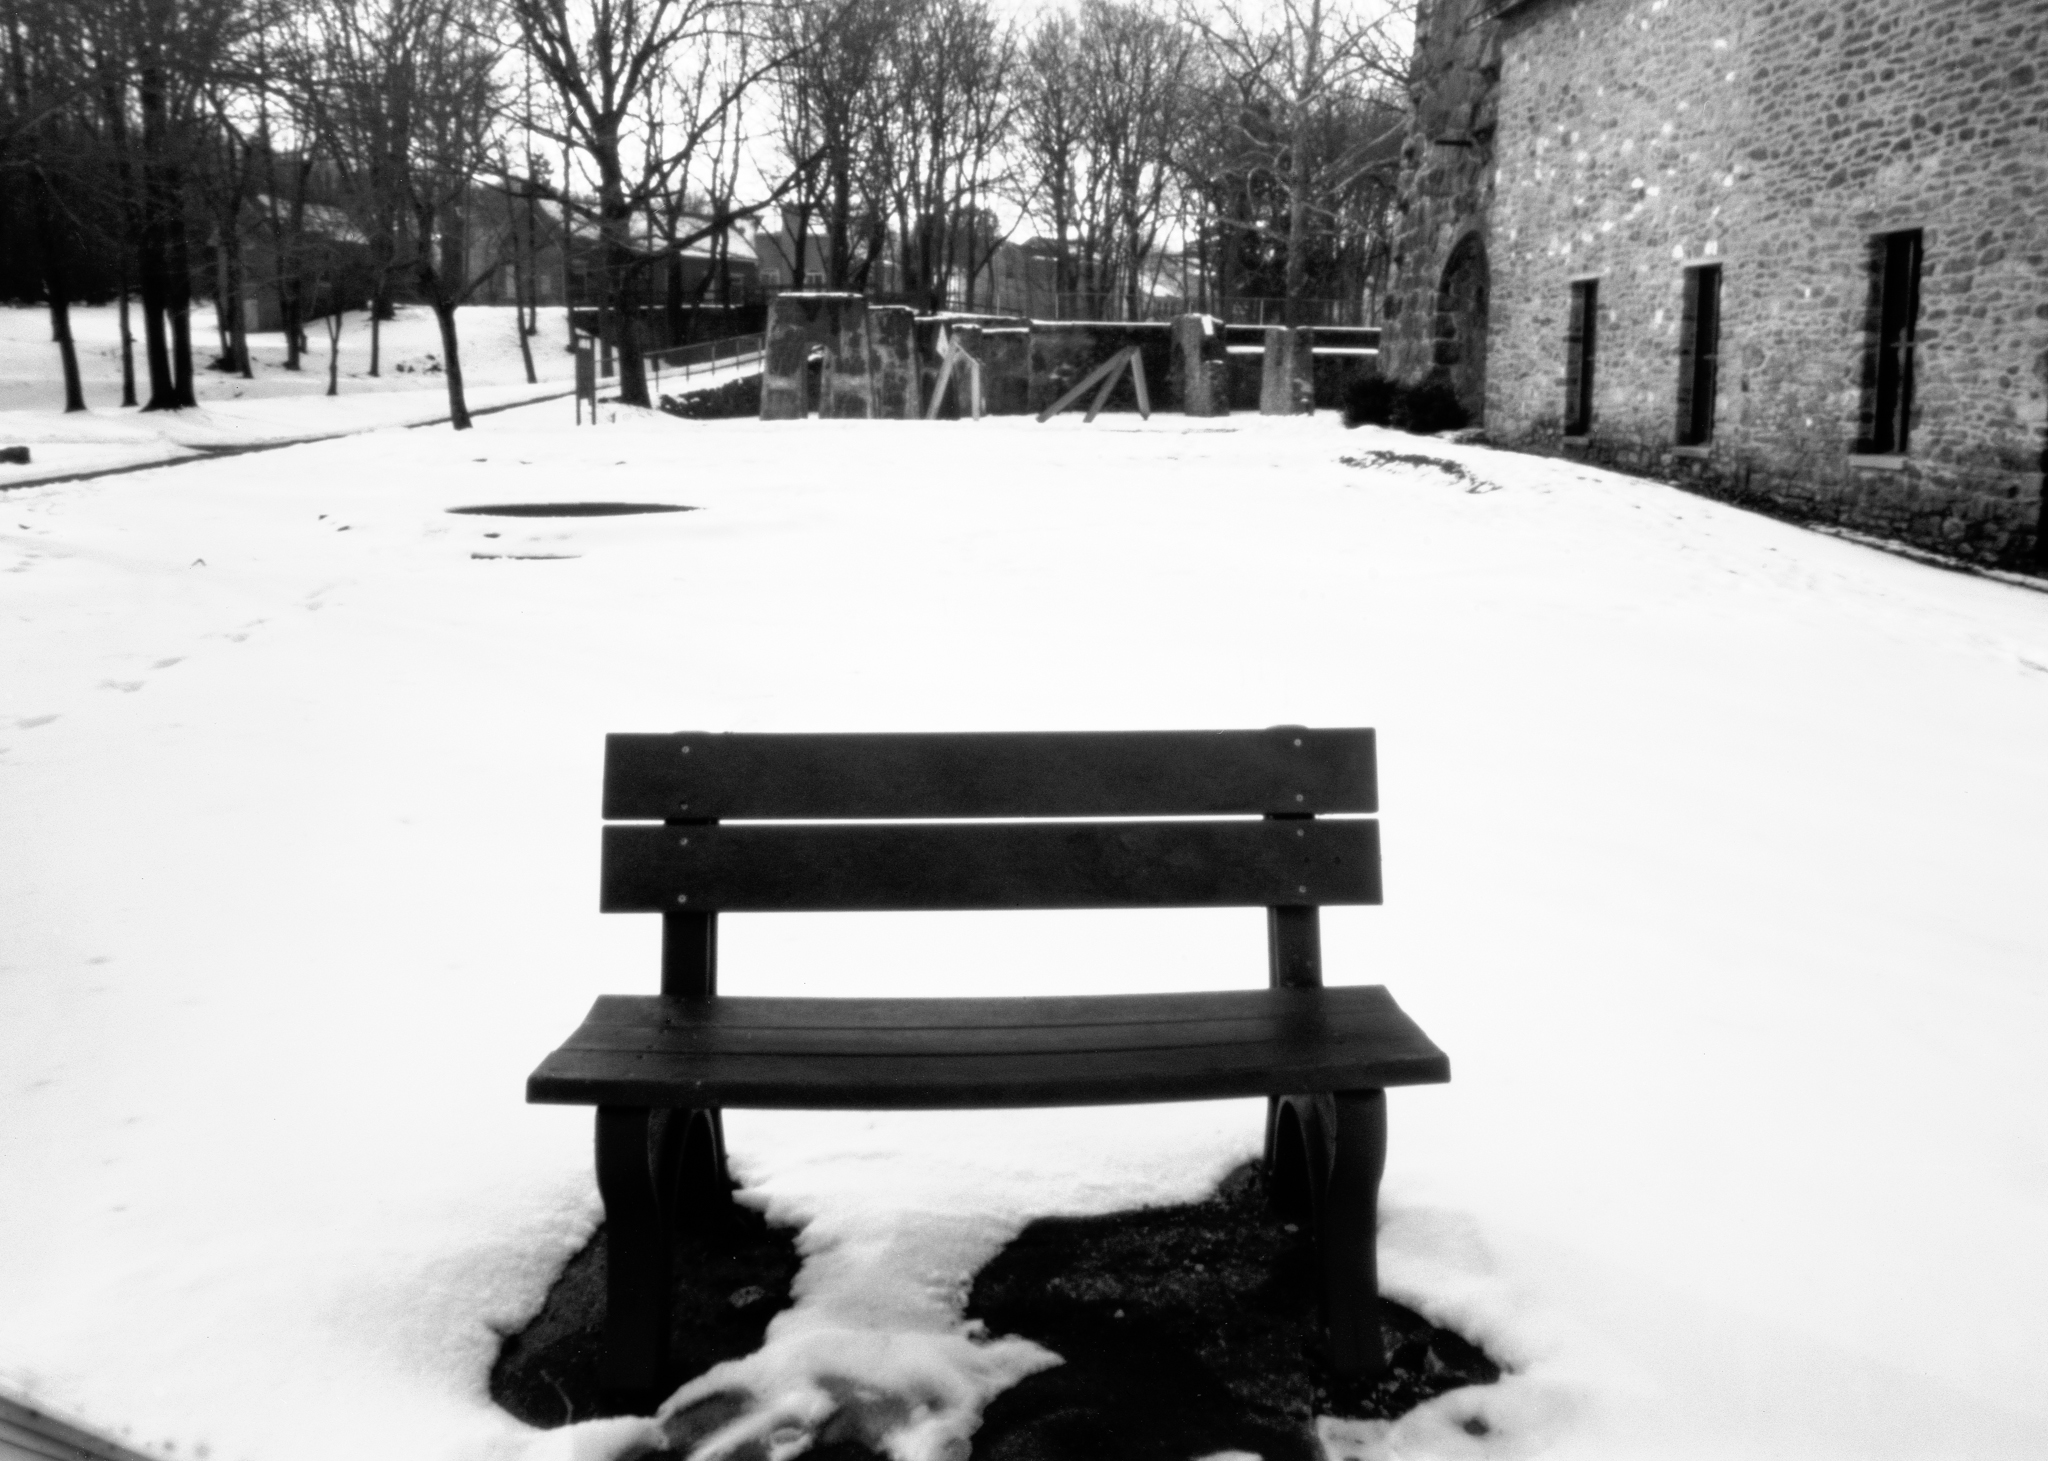 4x5_for_365_project_038_Lockridge_Furnace_bench_pinhole.jpg